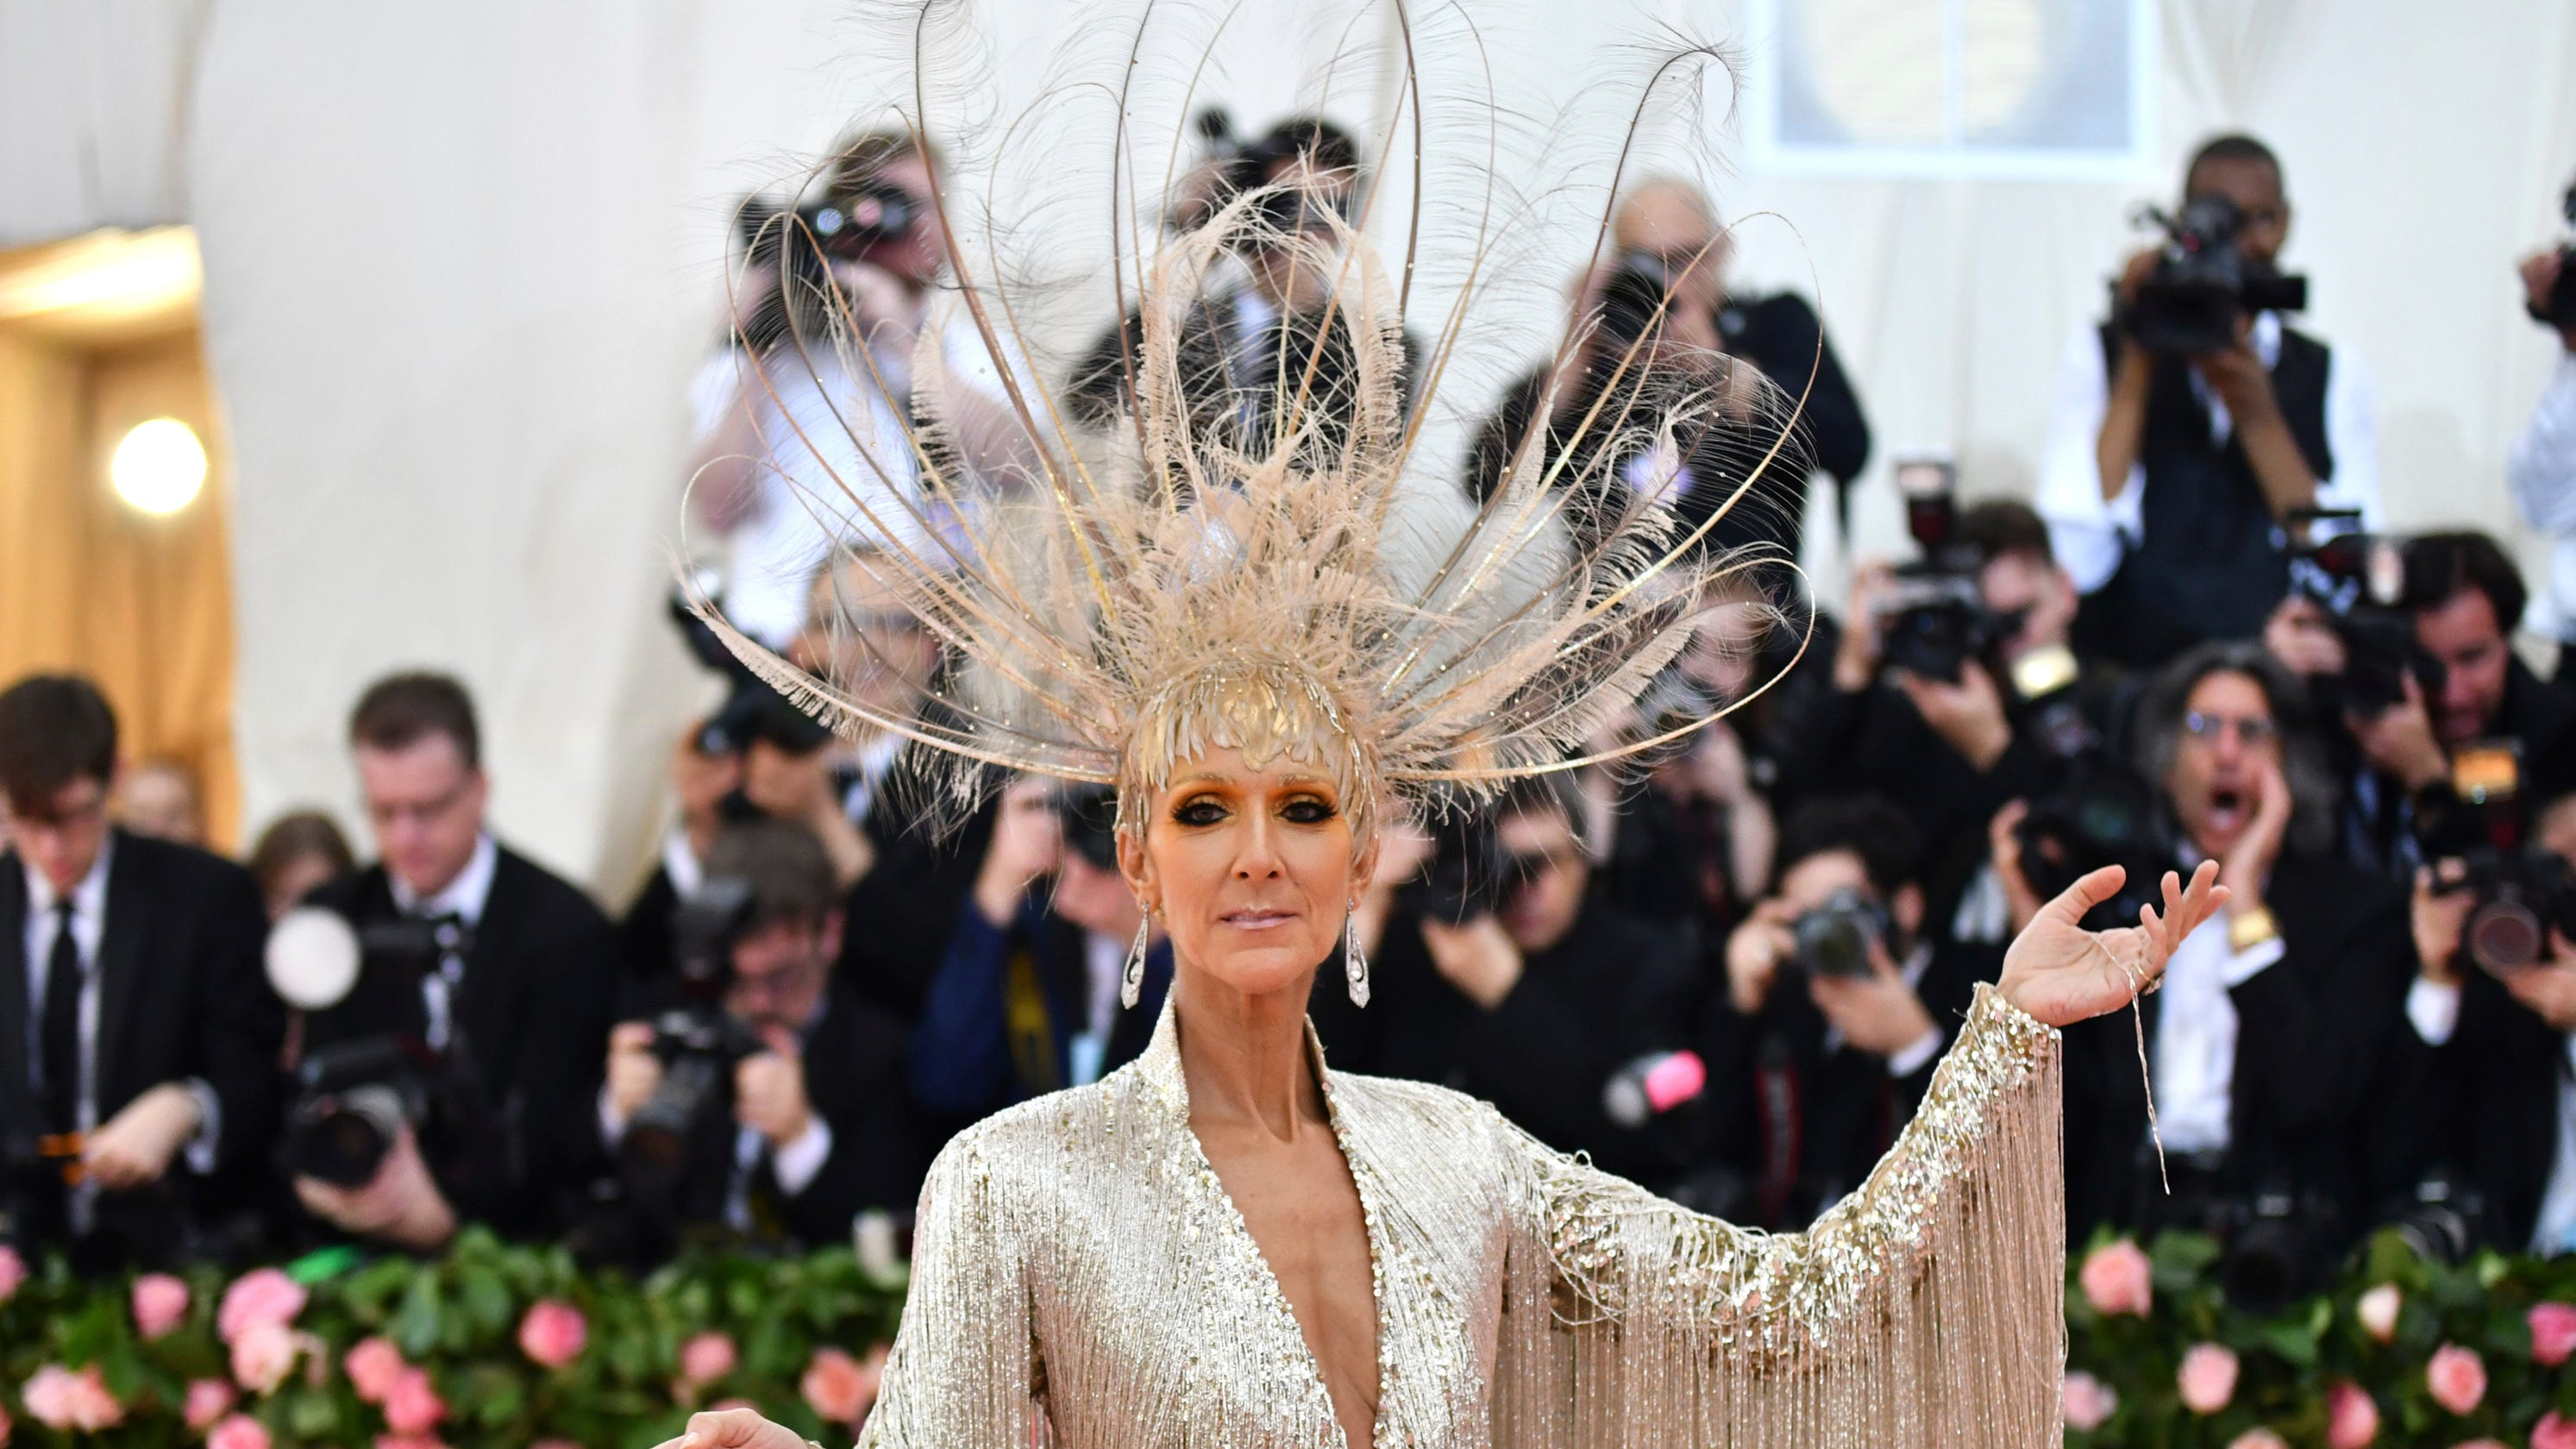 Met Gala: Celine Dion Is An Instant Meme On The Red Carpet